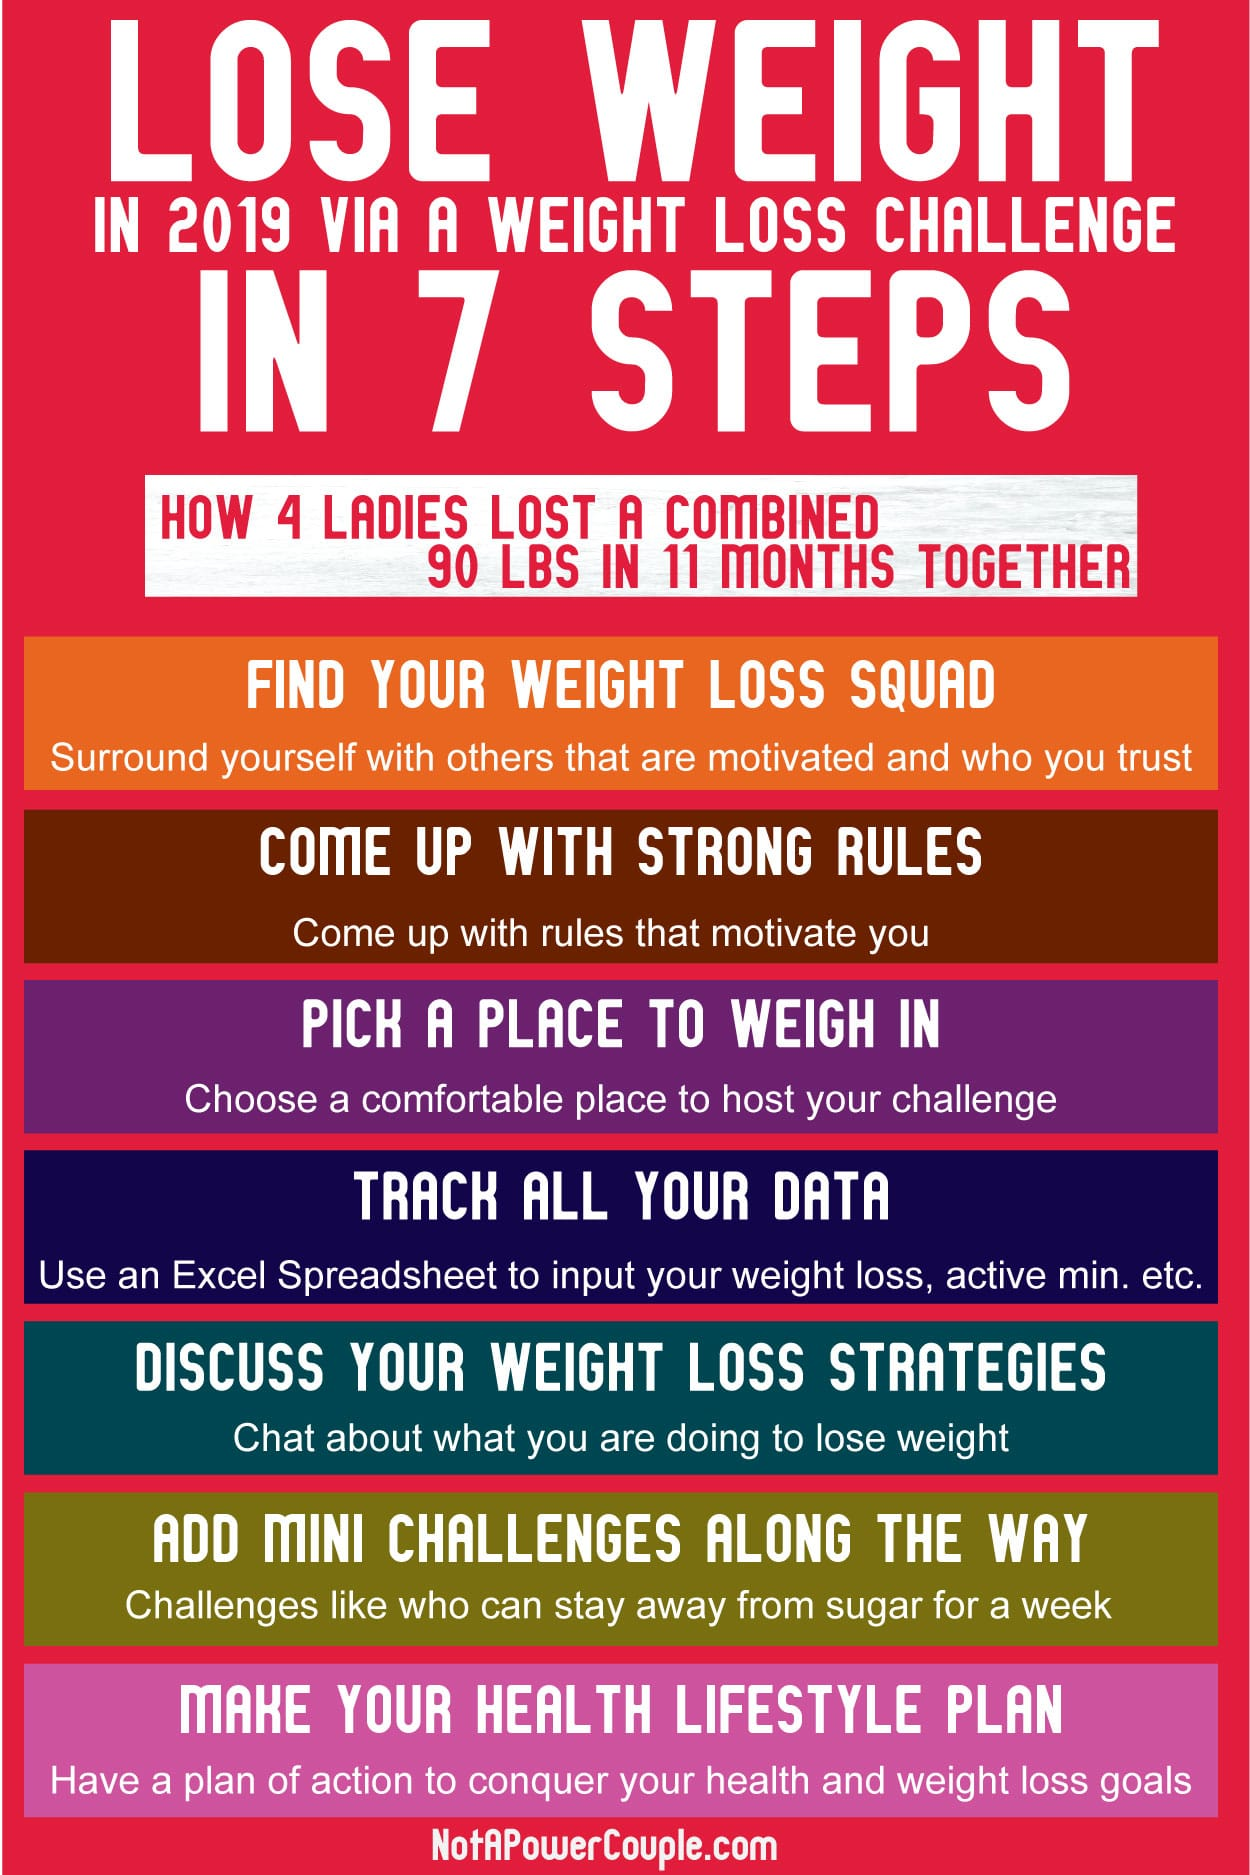 The Ultimate Guide To Losing Weight In Via A Weight